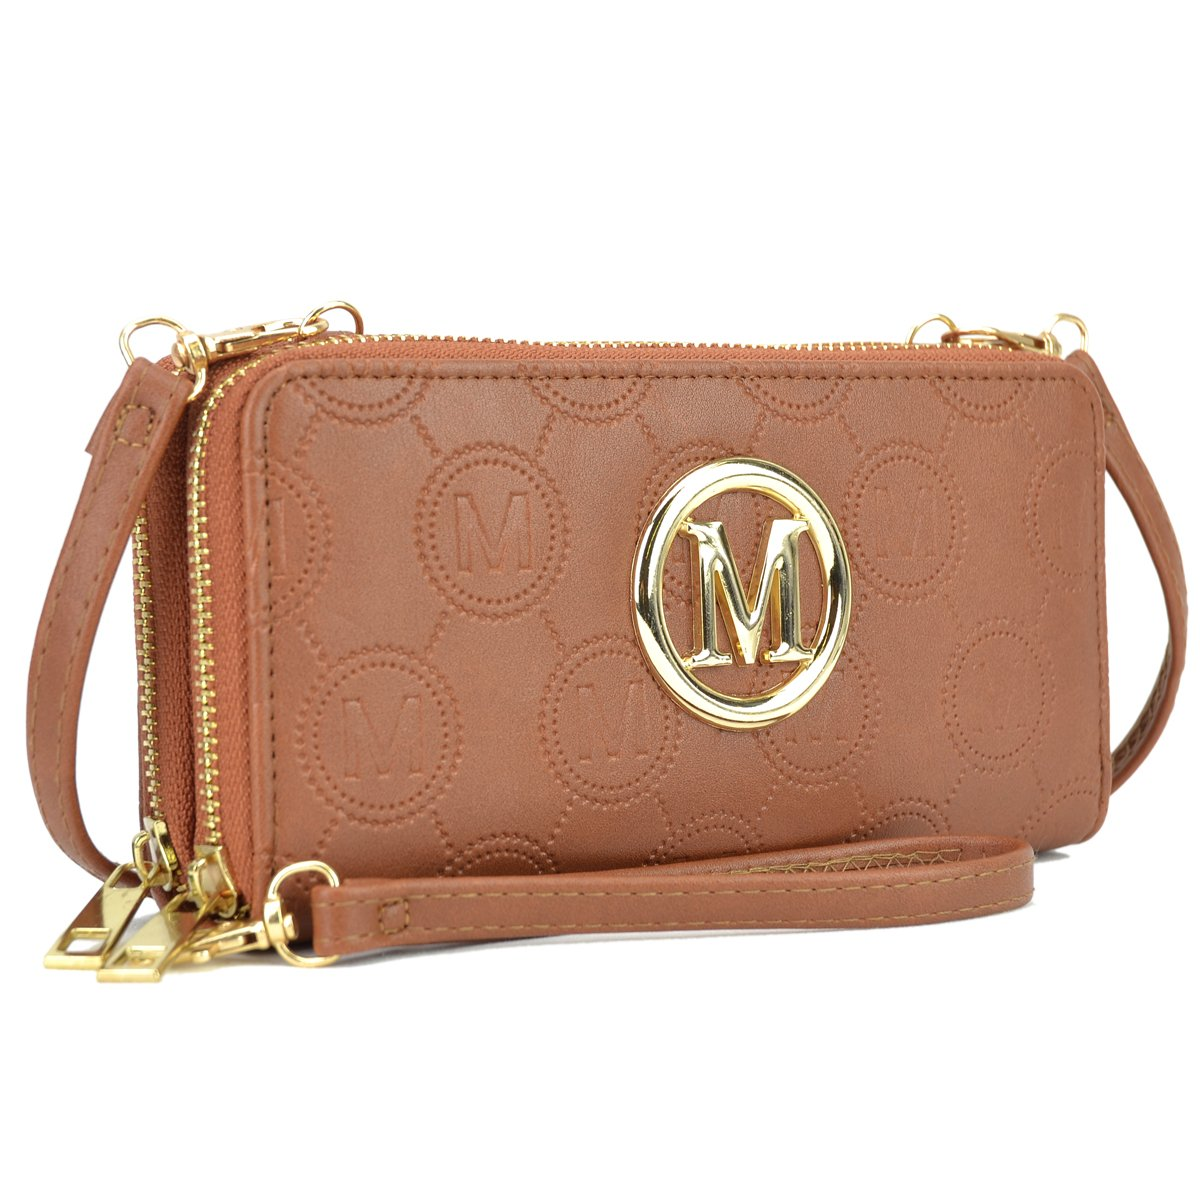 1083 Brown Functional Lightweight Crossbody bags for Women Simple Double Zip Around Should Bags Wallet Card Case Holder Organizer